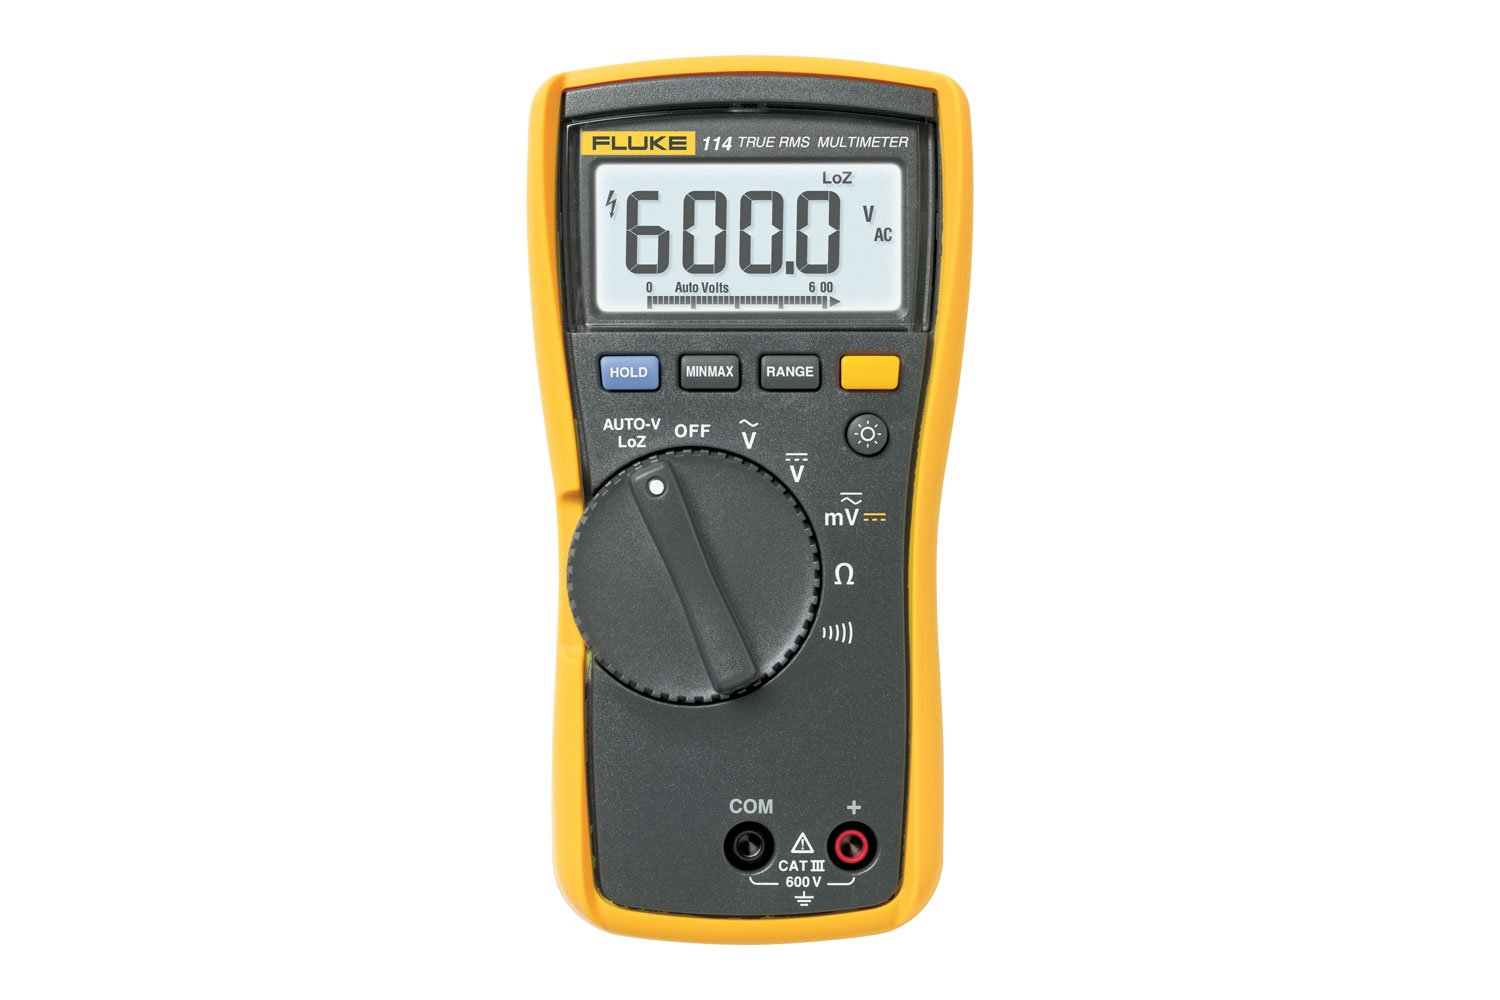 Fluke 114 True Rms Electrical Multimeter Cat Iii 600 V When The Switch Is Open Voltmeter Reads 60 And It